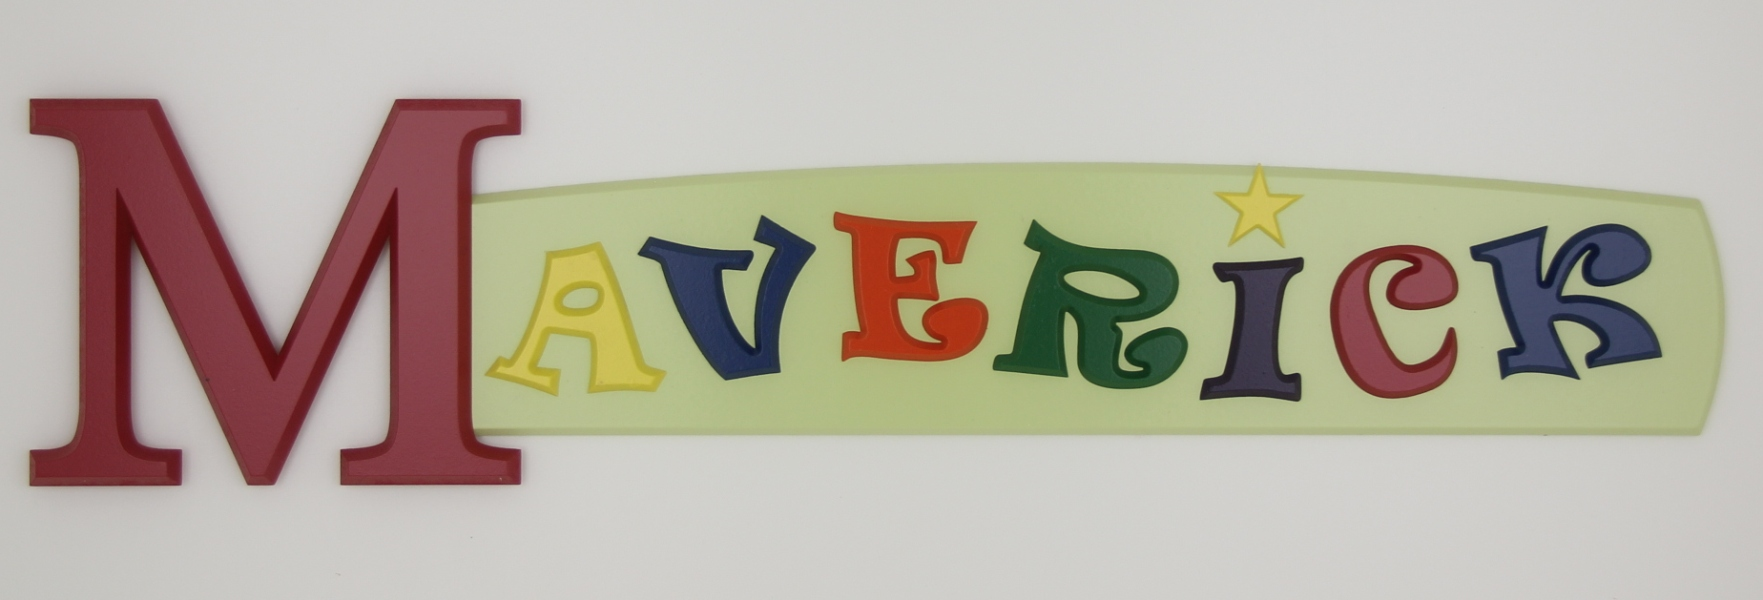 painted wooden name sign for Maverick